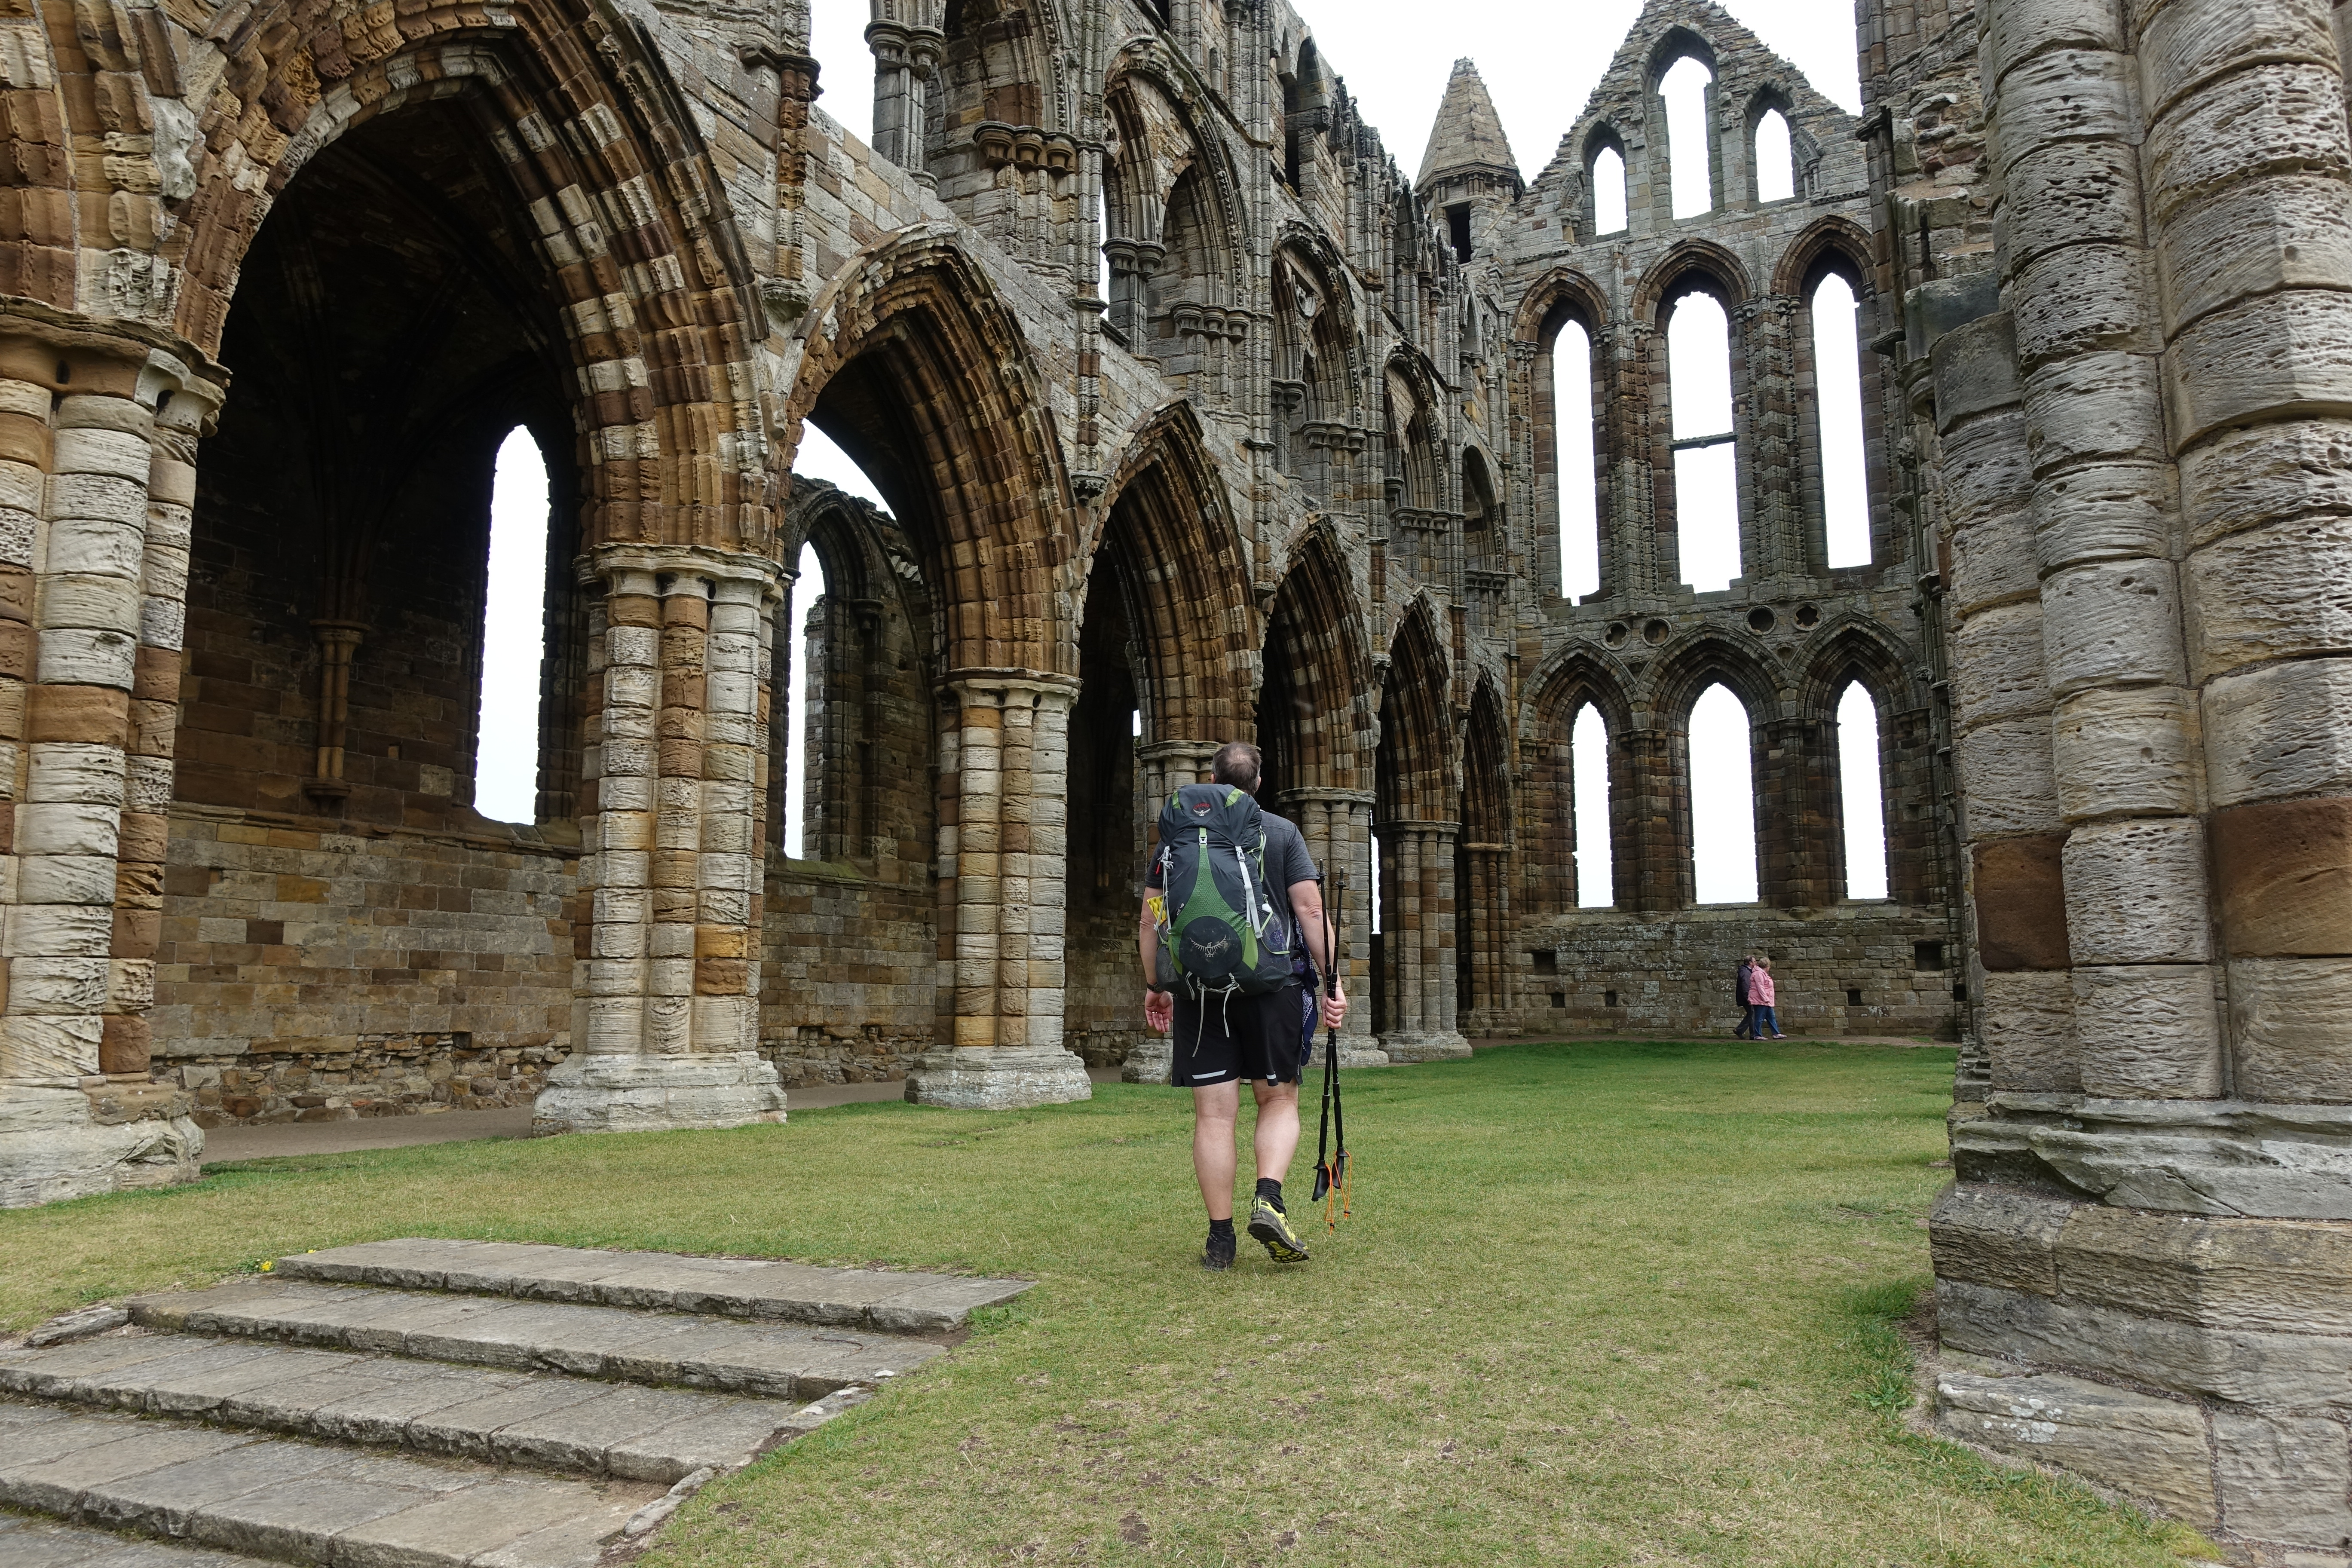 The Cleveland Way brushes right past Whiby Abbey and Three Points of the Compass took time off from trail to explore